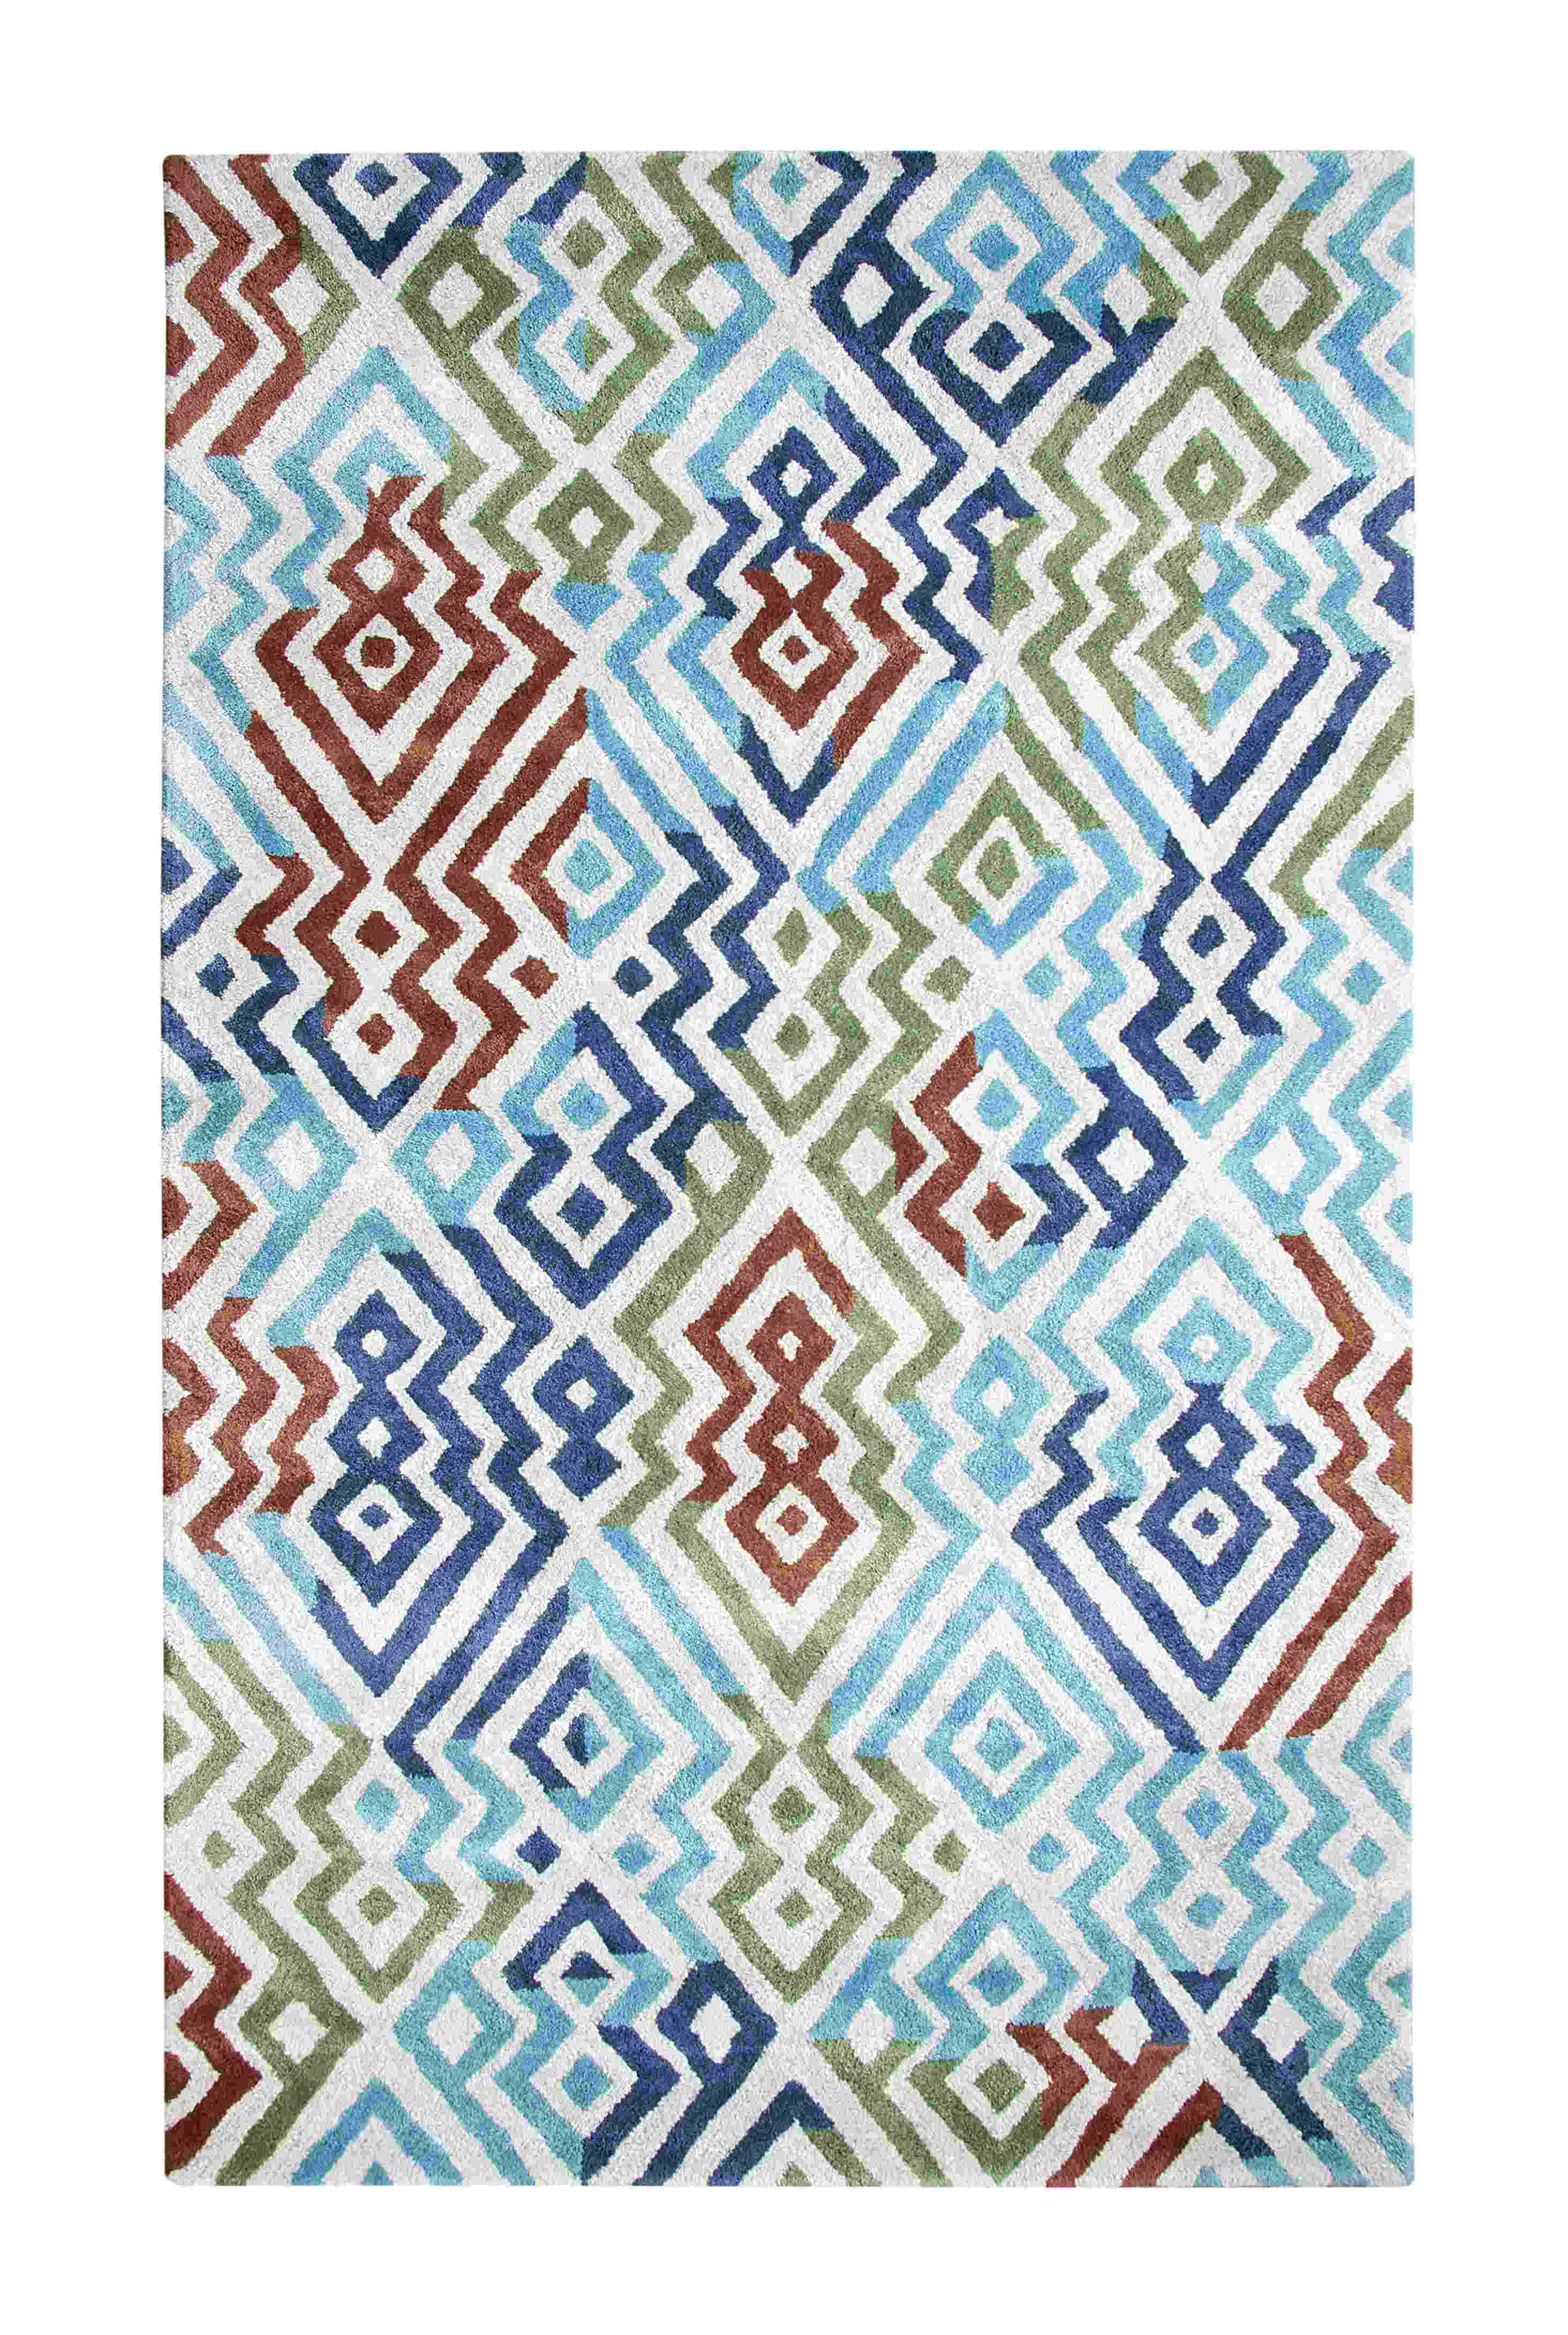 Dynamic Rugs Vogue Modern Slv/tuq 881000 Area Rug